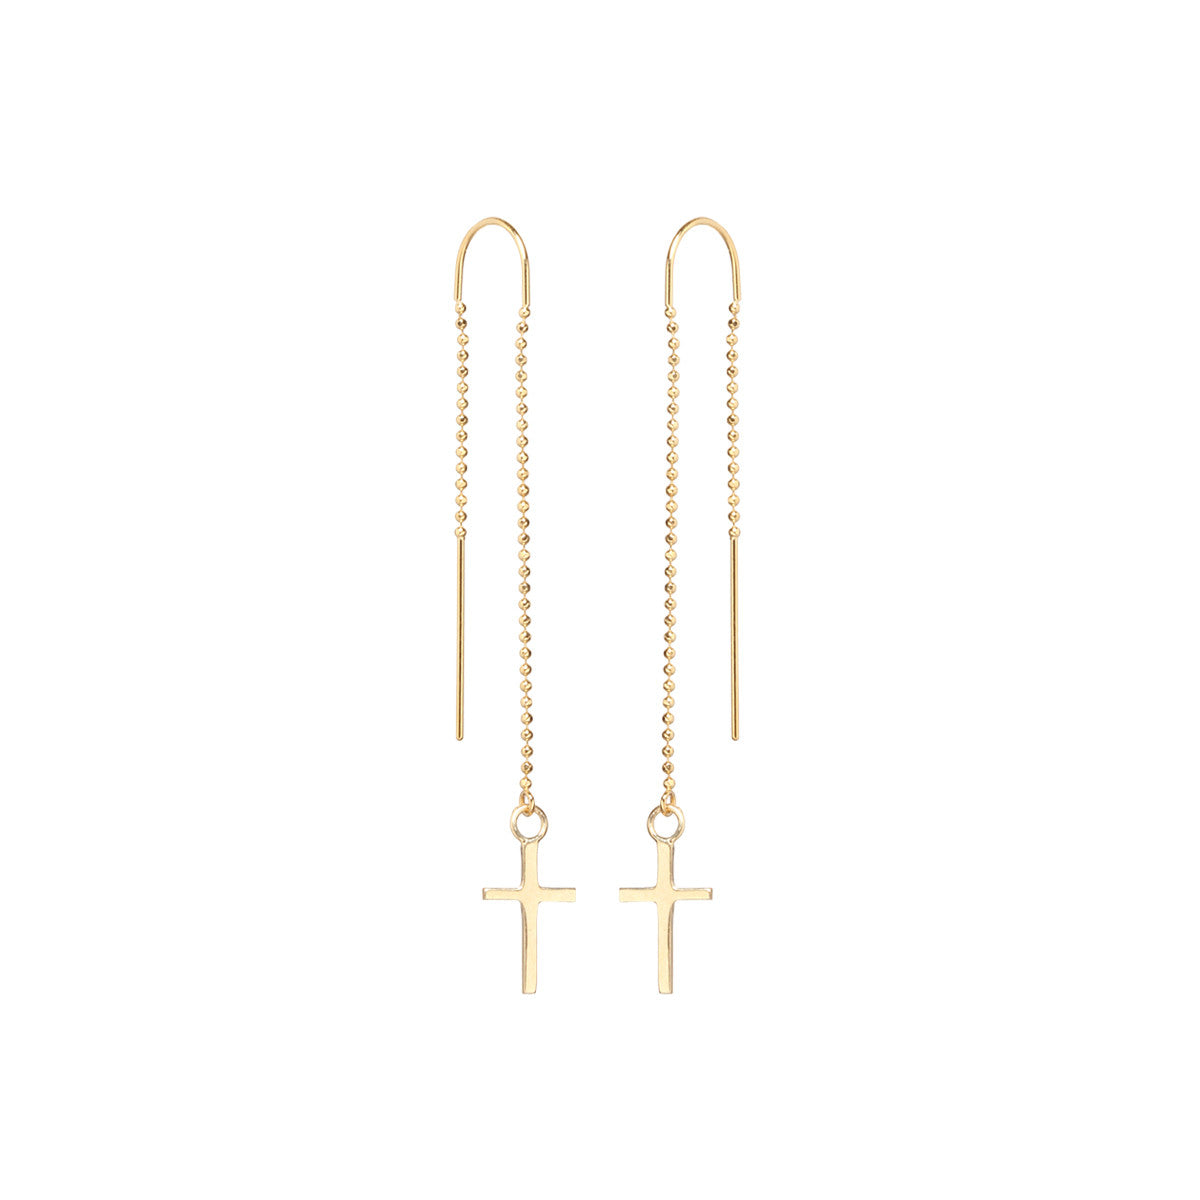 Zoë Chicco 14kt Yellow Gold Cross Threader Earring